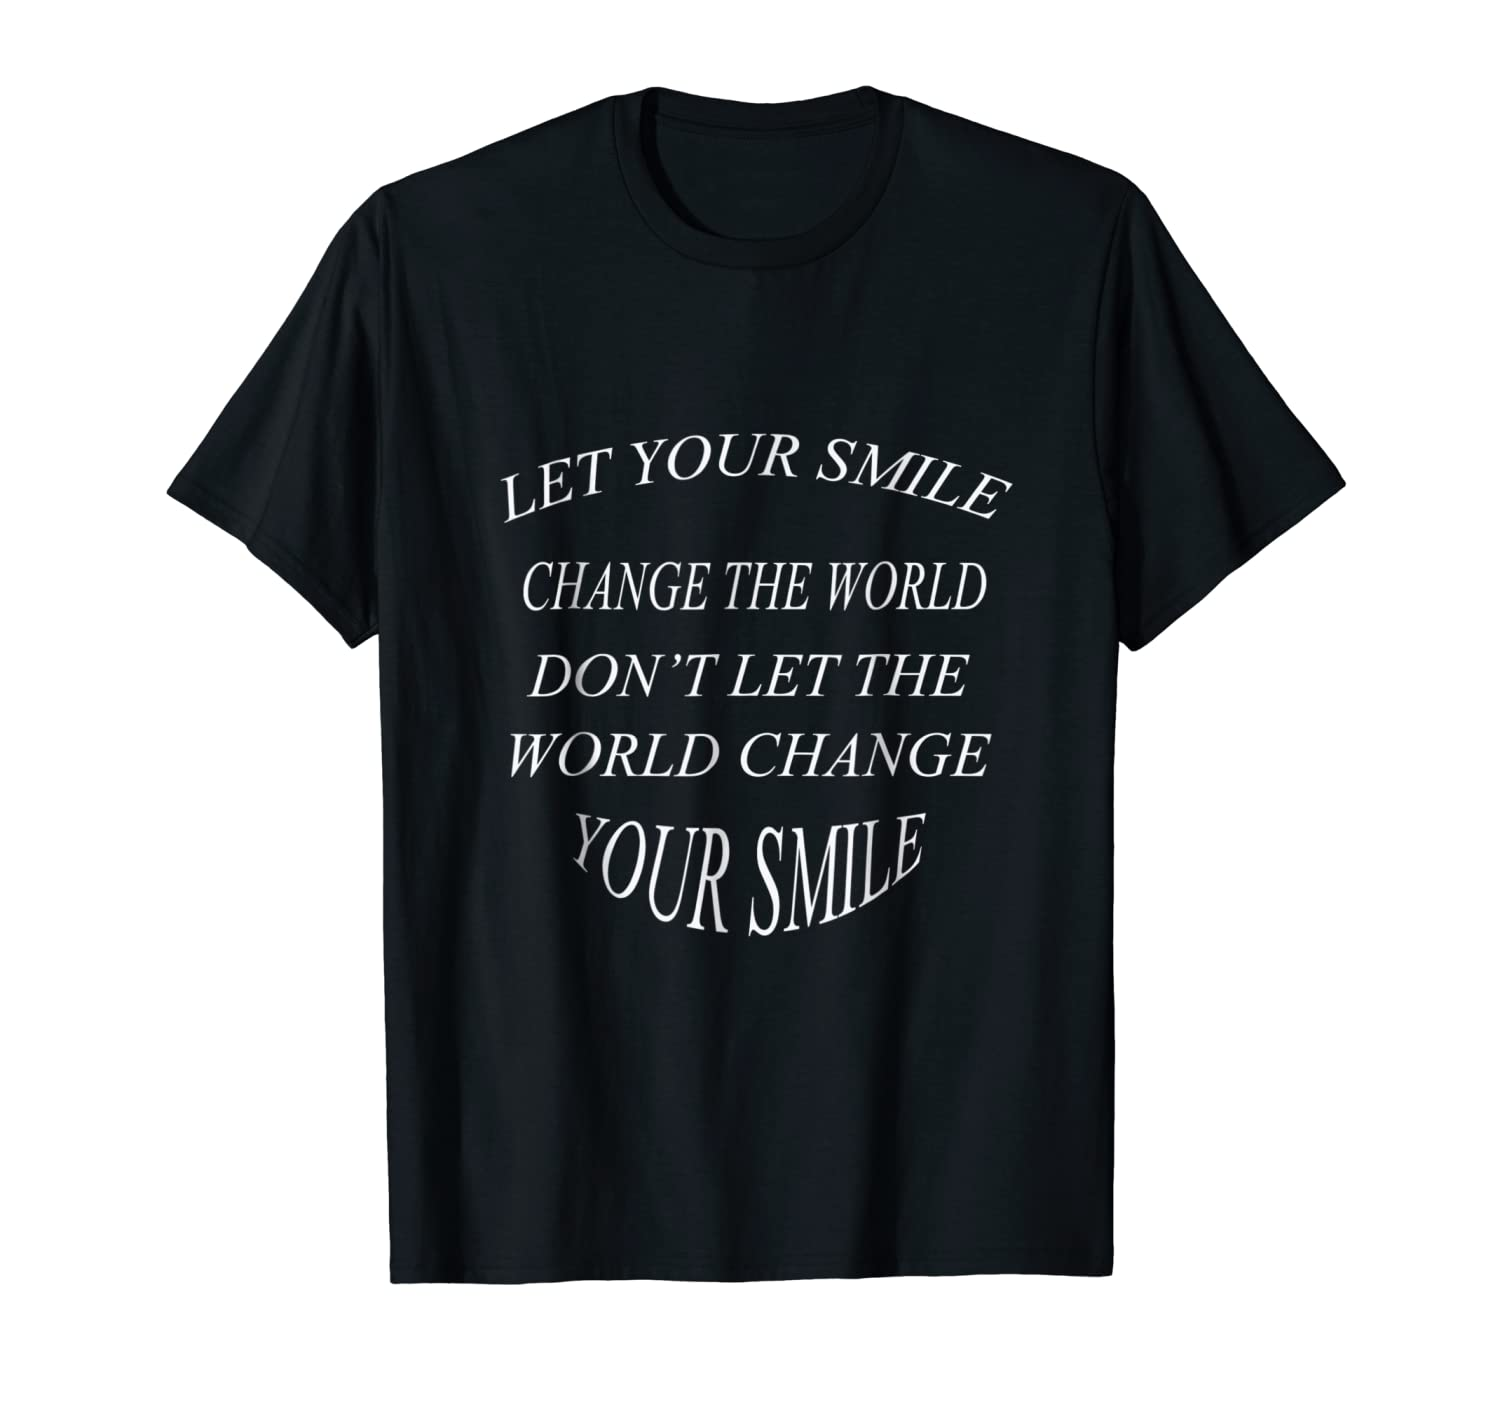 8cb9ff62 Amazon.com: Let Your Smile Change The World Don't Let The World Tshirt:  Clothing